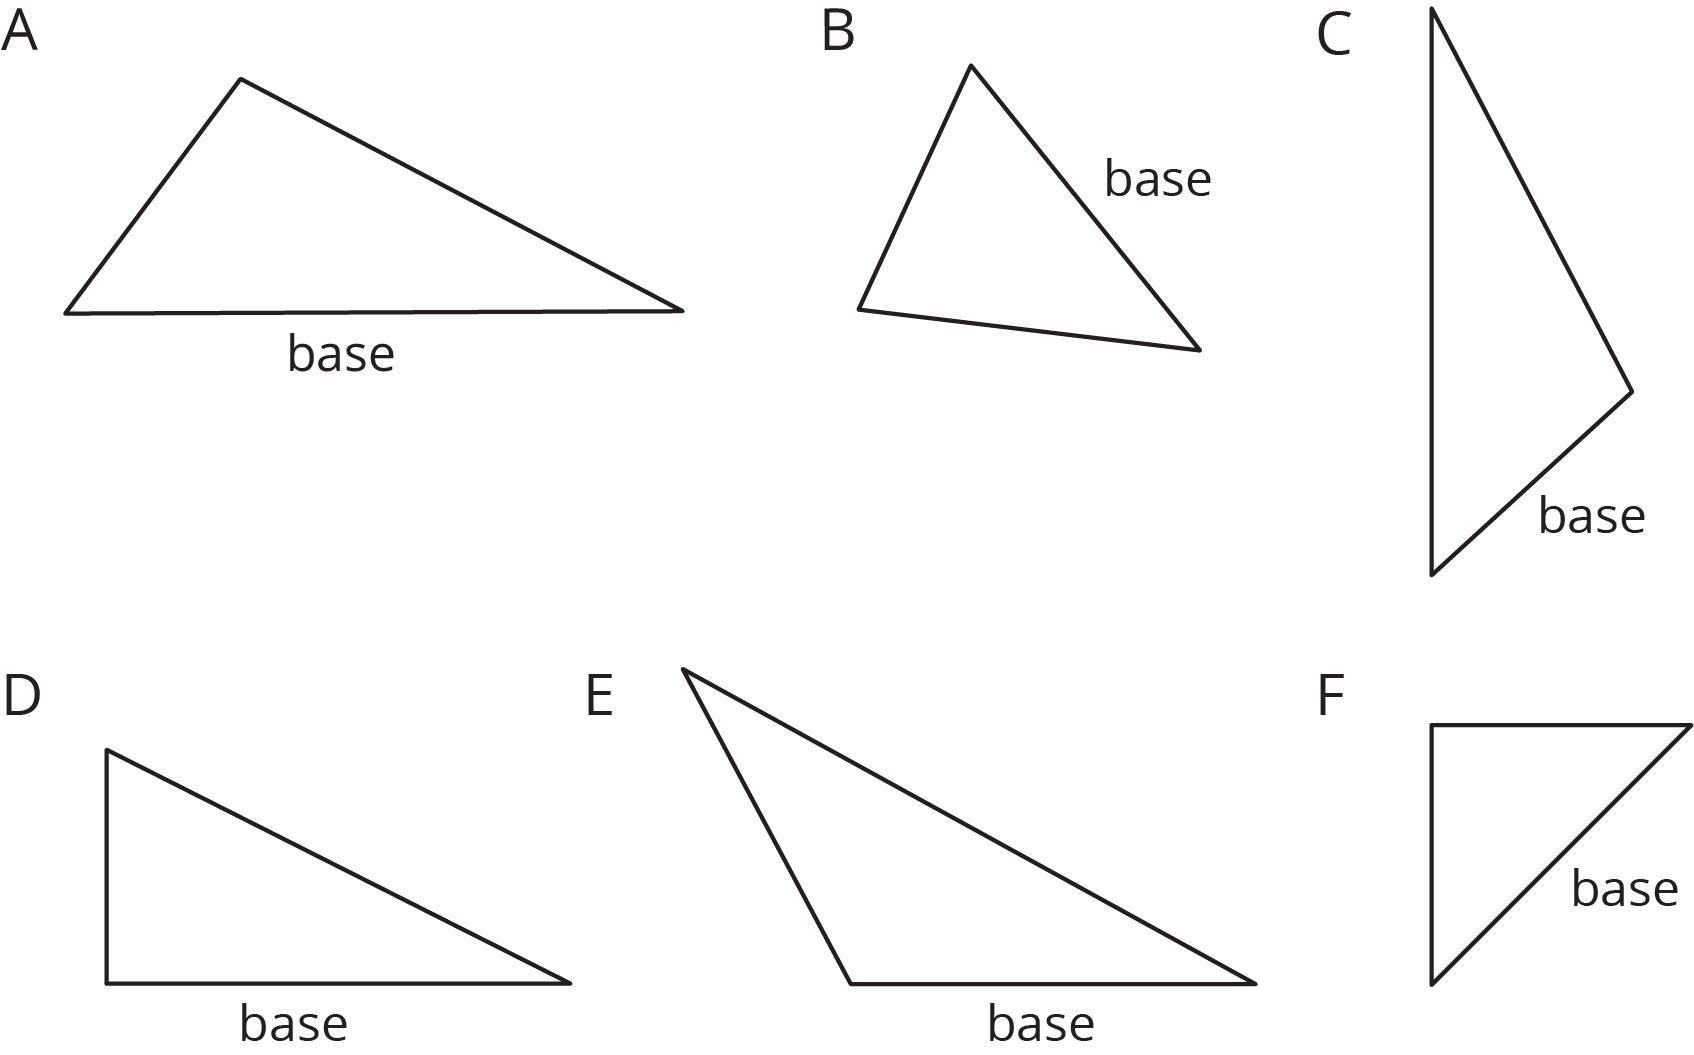 Six triangles labeled A--F each with one side marked as the base.